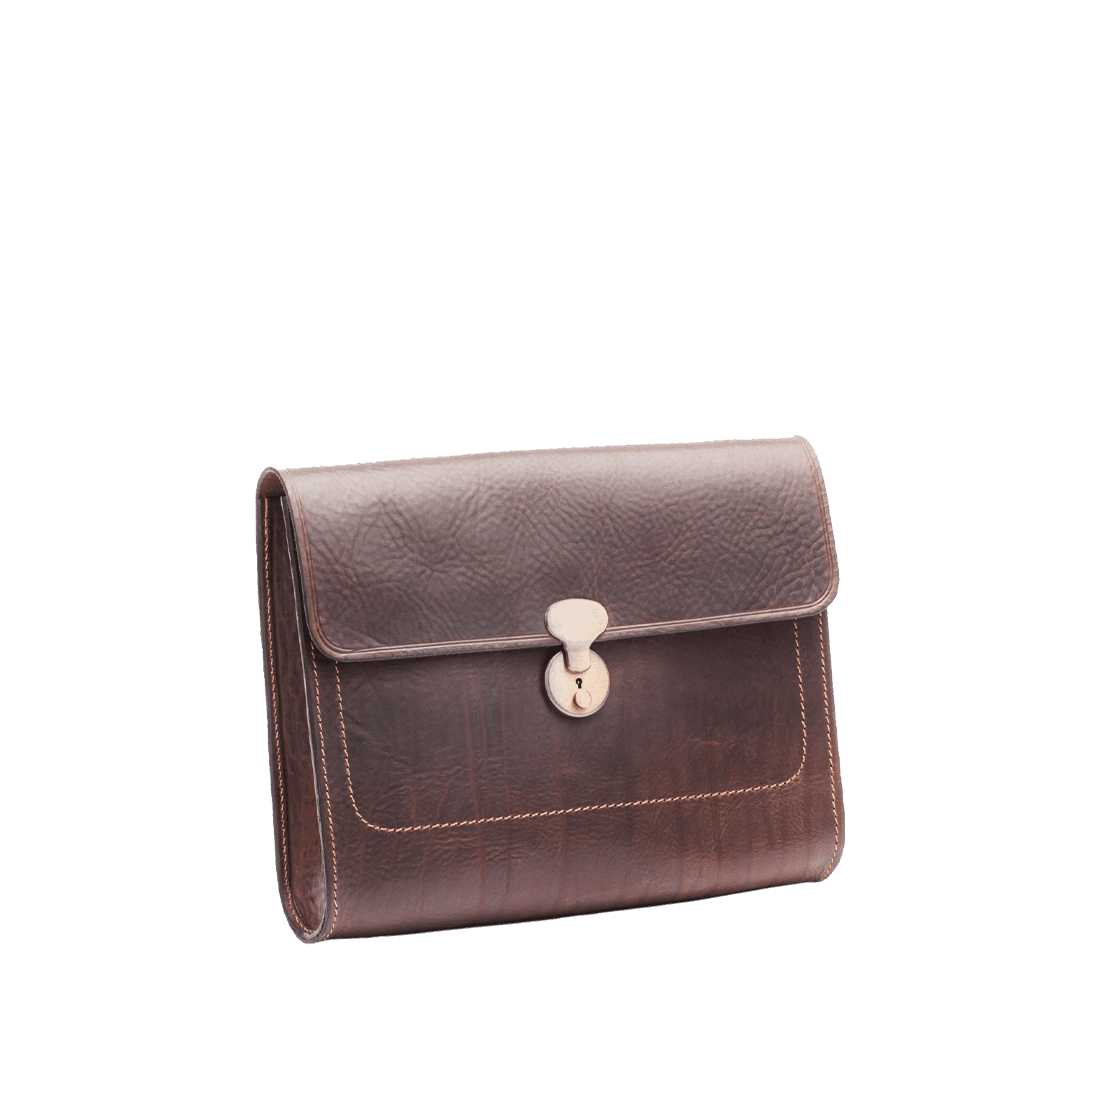 The Document case antique brown